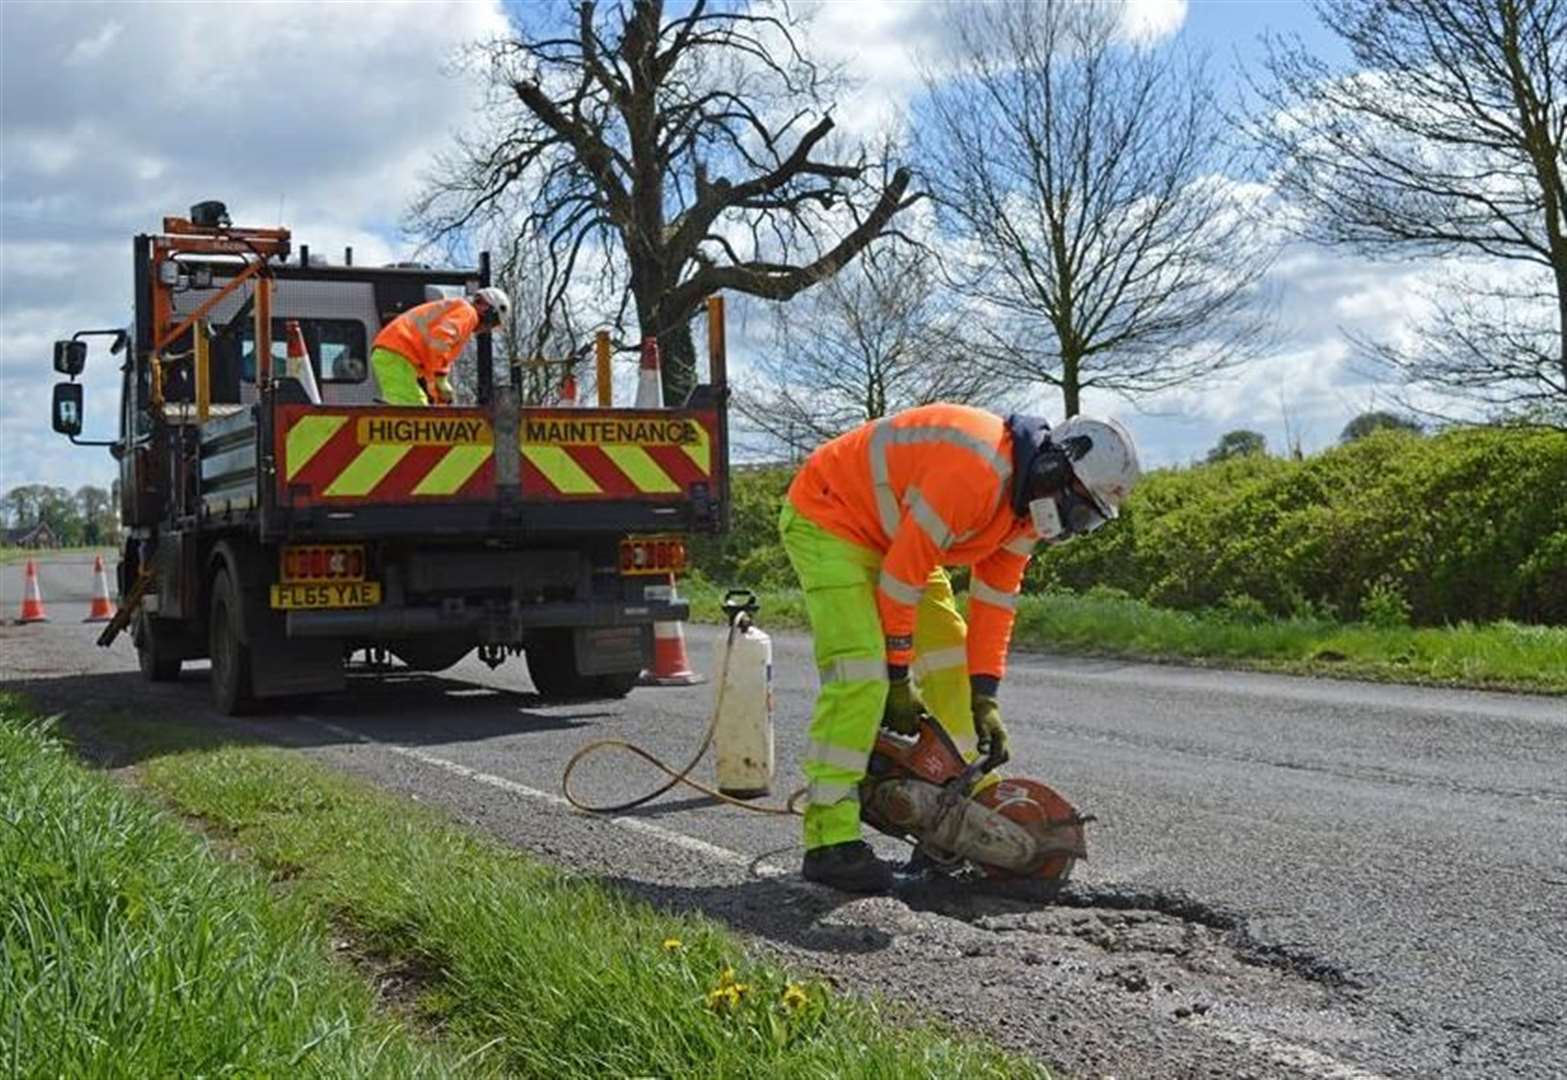 Roadworks on A151 with a 20mph speed limit in force